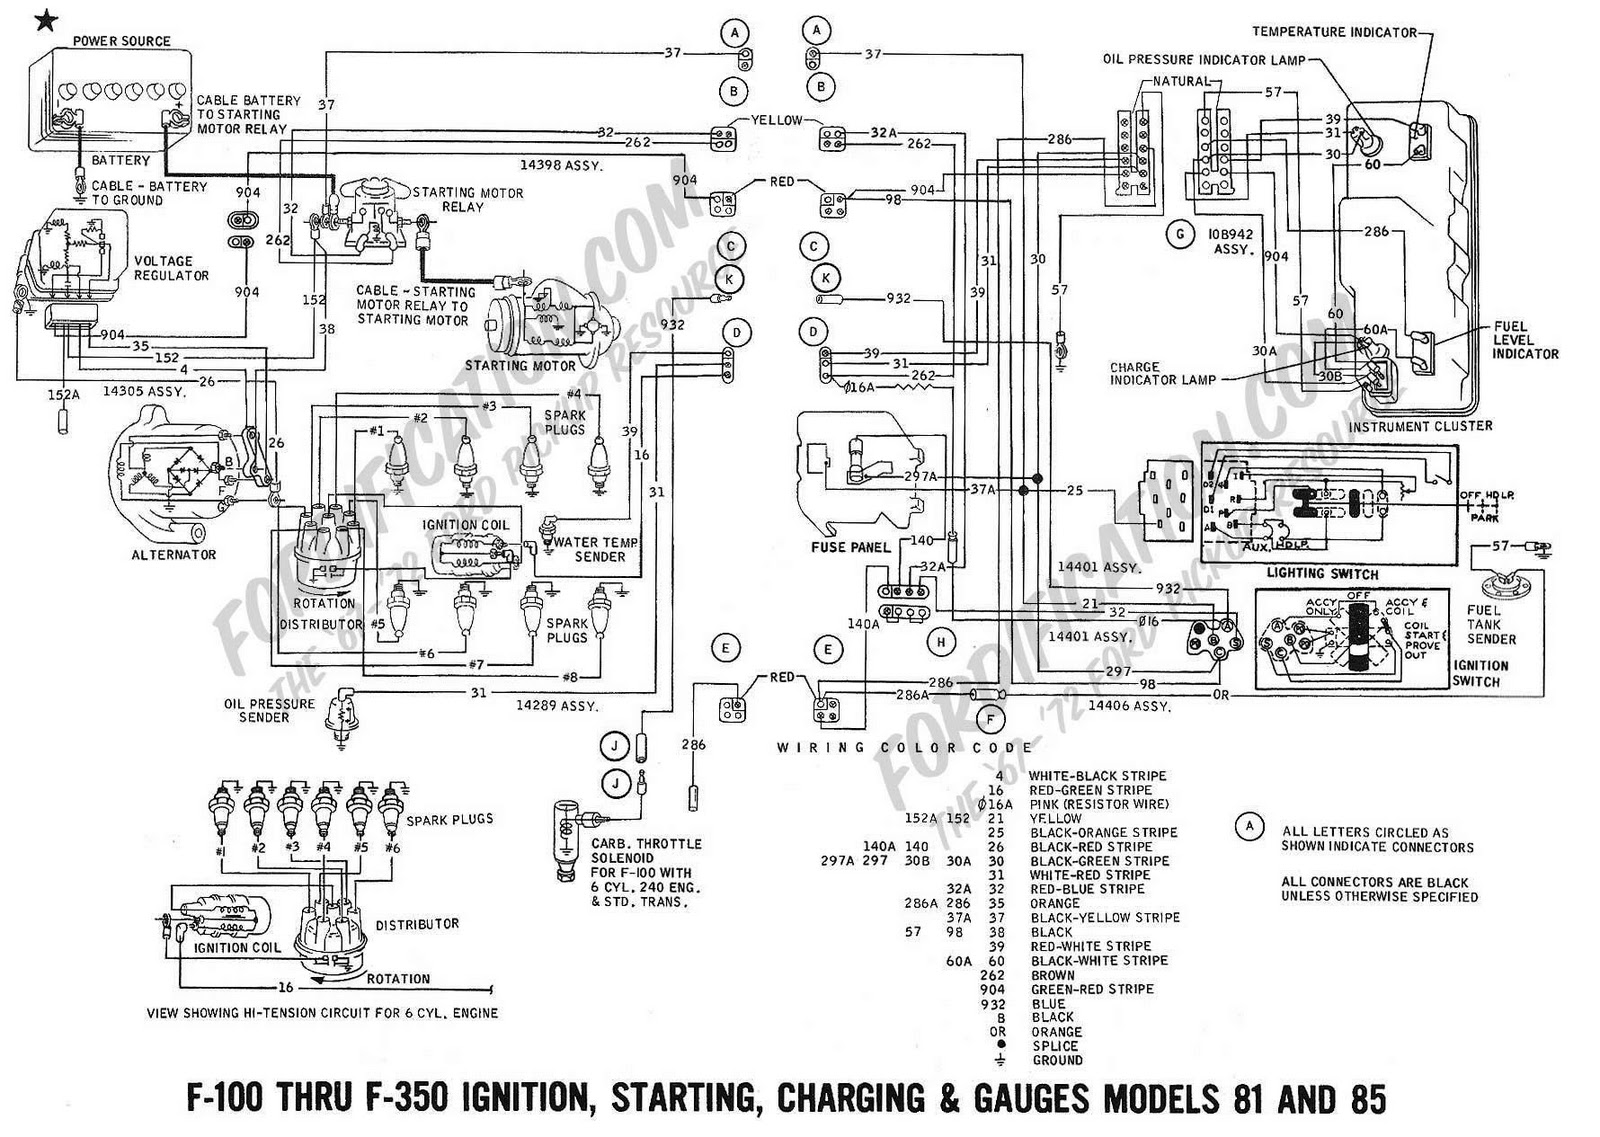 Ford Mustang Alternator Wiring Diagram on 1992 mustang alternator wiring diagram, 1983 mustang alternator wiring diagram, 1973 mustang alternator wiring diagram, 1980 mustang alternator wiring diagram, 1972 mustang alternator wiring diagram, 1971 mustang alternator wiring diagram, 1986 mustang alternator wiring diagram, 1990 mustang alternator wiring diagram, 1985 mustang alternator wiring diagram, 1969 mustang alternator wiring diagram, 1967 mustang alternator wiring diagram, 1970 mustang alternator wiring diagram, 1966 mustang alternator wiring diagram, 1968 mustang alternator wiring diagram, 1989 mustang alternator wiring diagram,